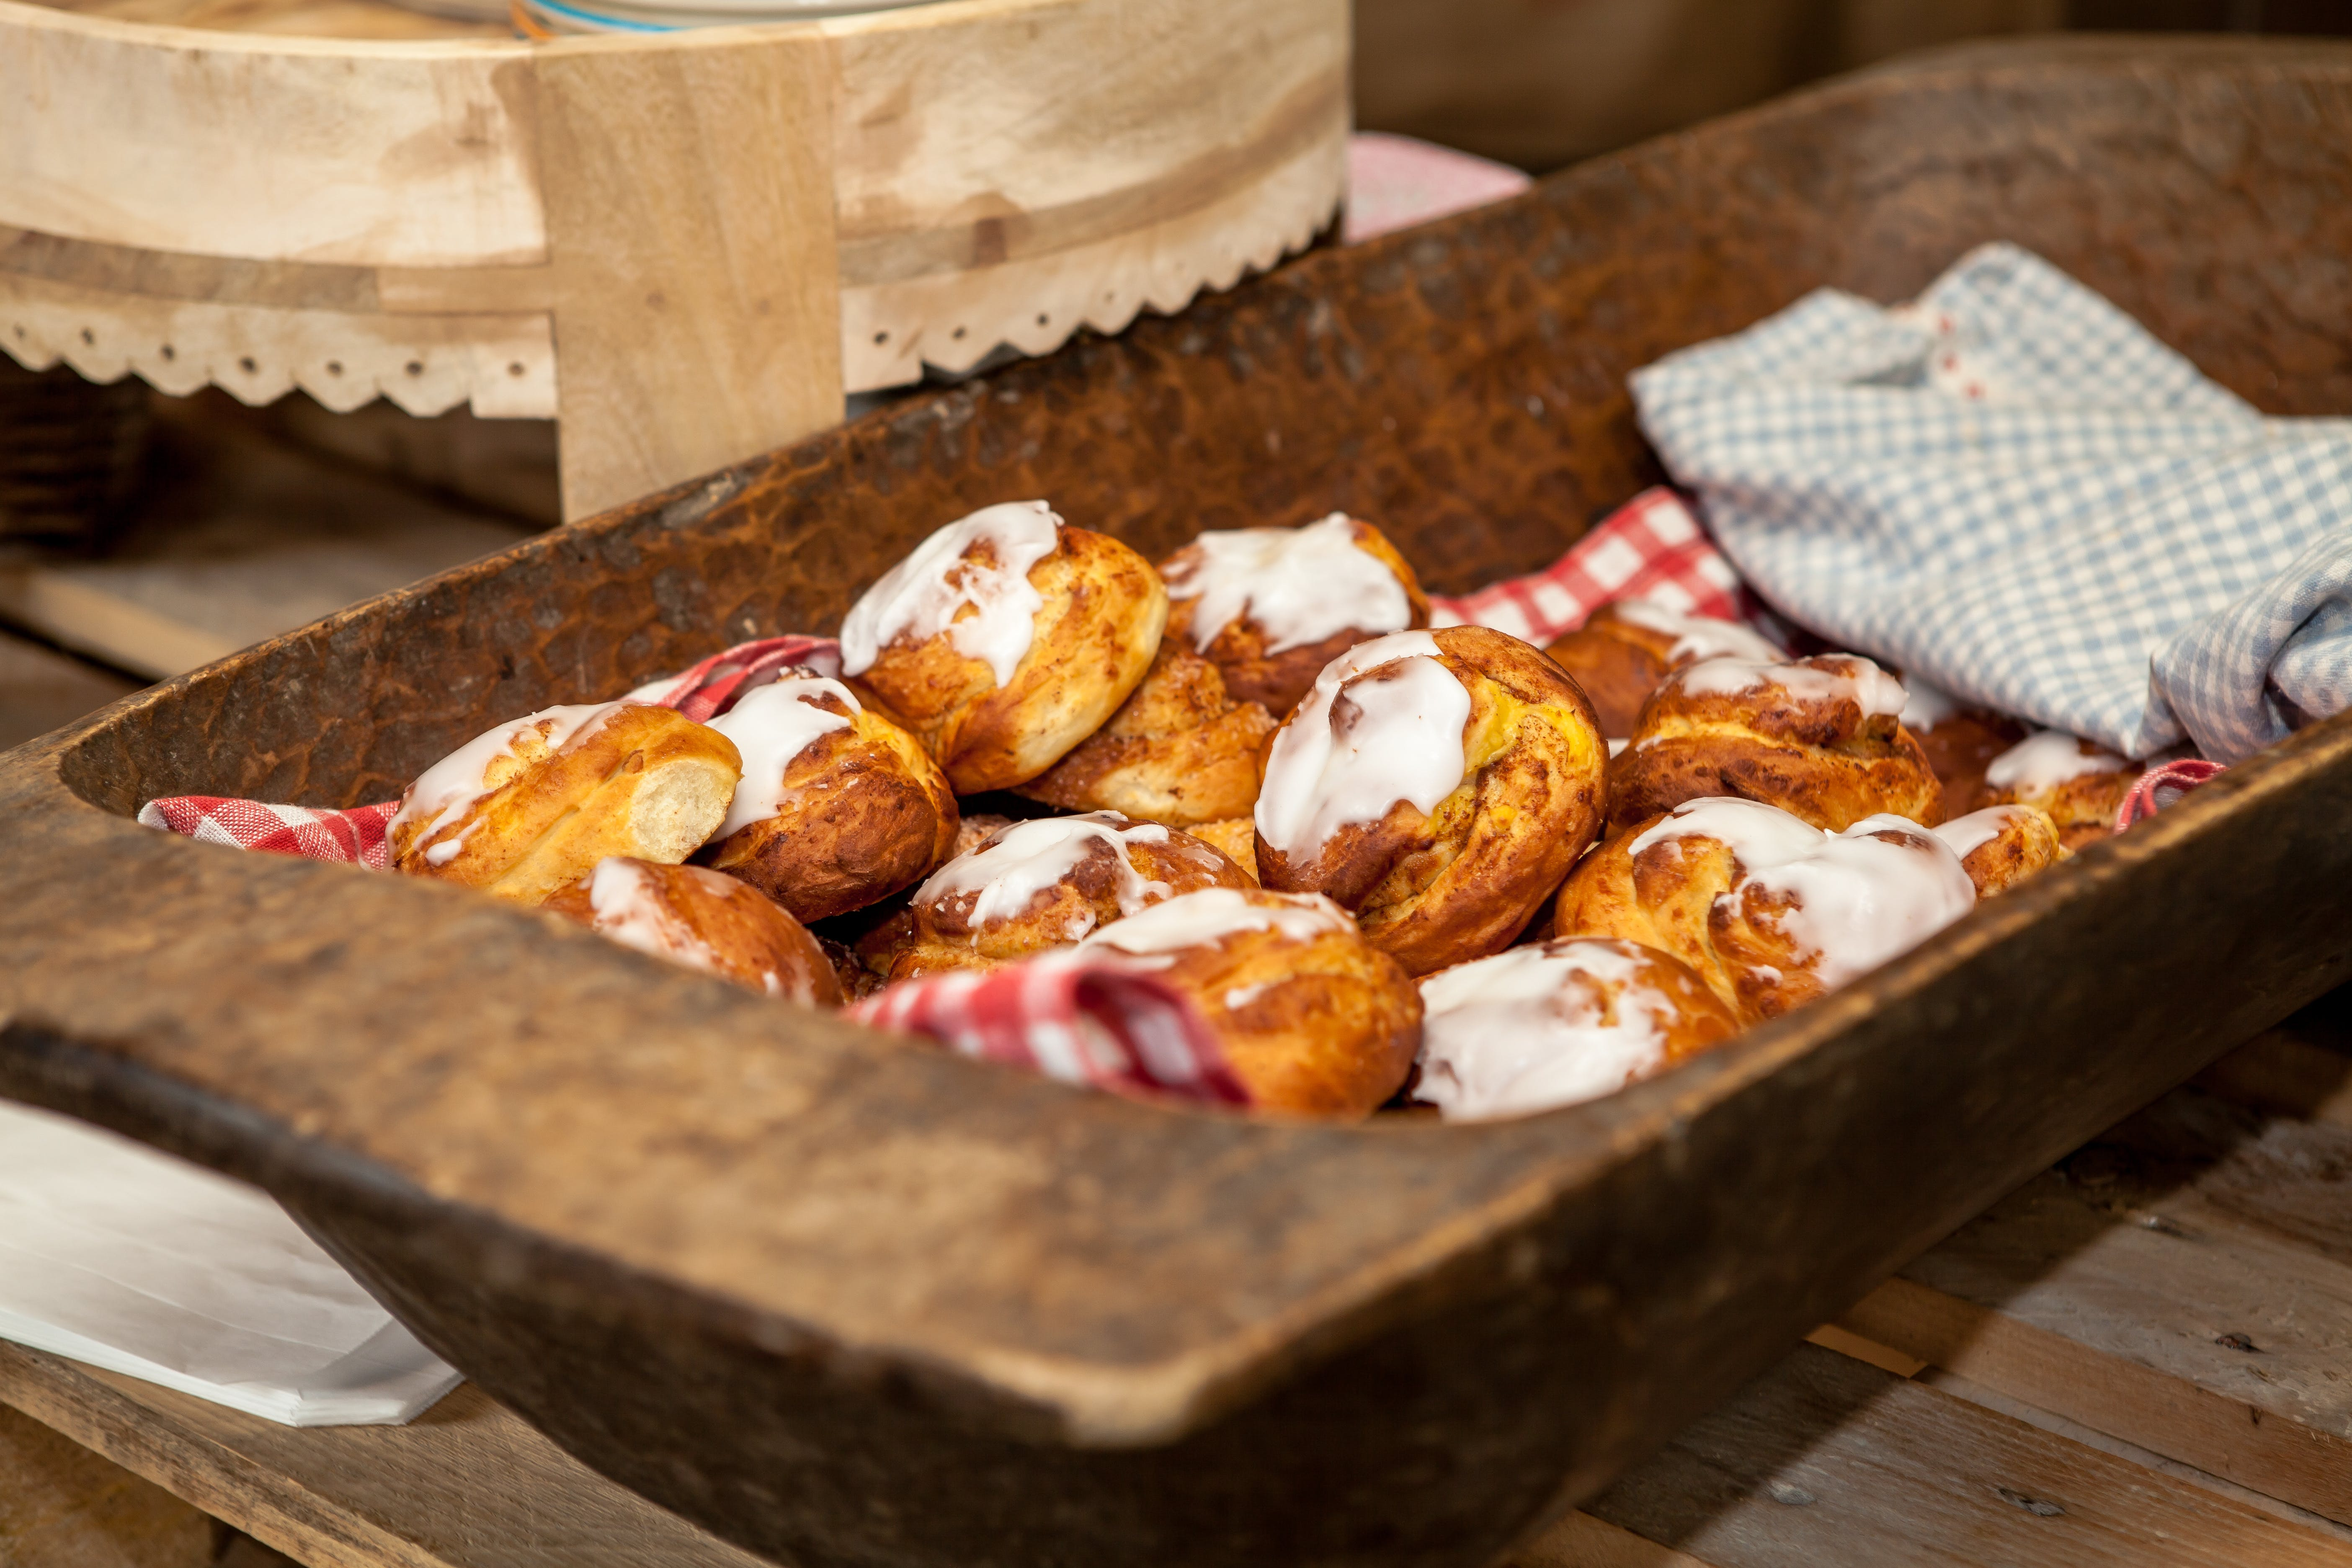 Free stock photo of food, healthy, wood, meal